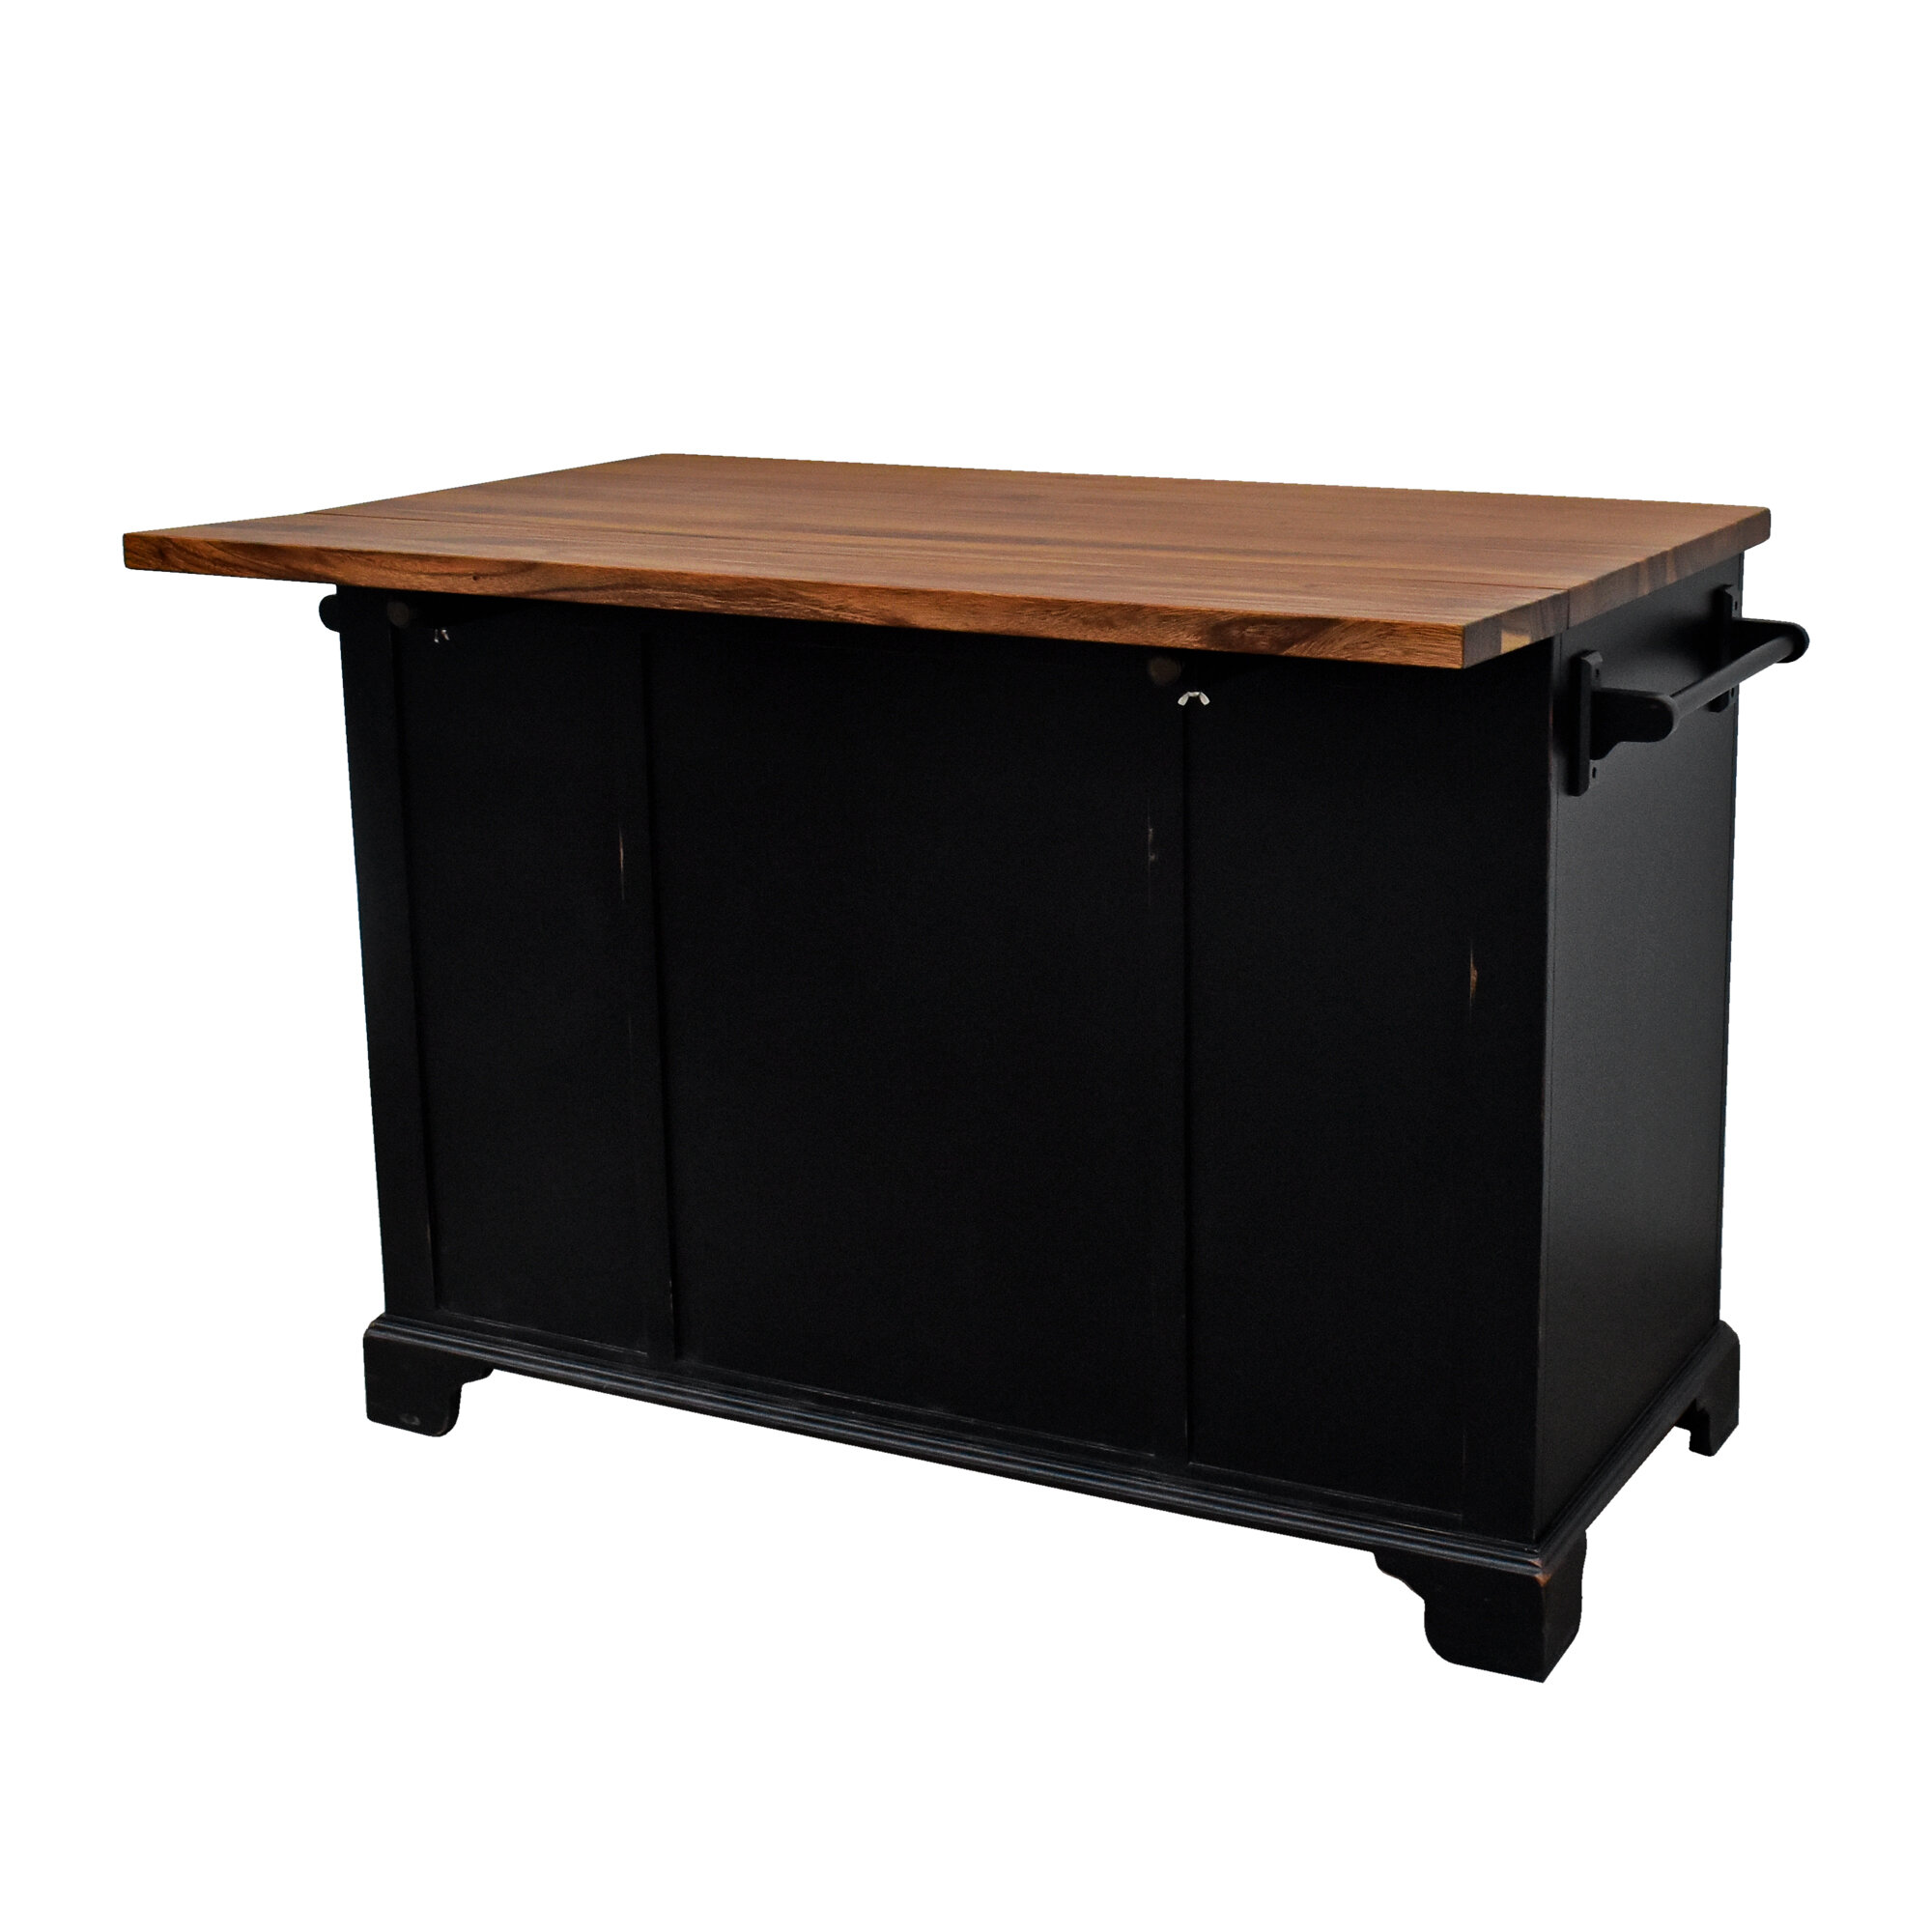 Details About Darby Home Co Gerson Drop Leaf Kitchen Island